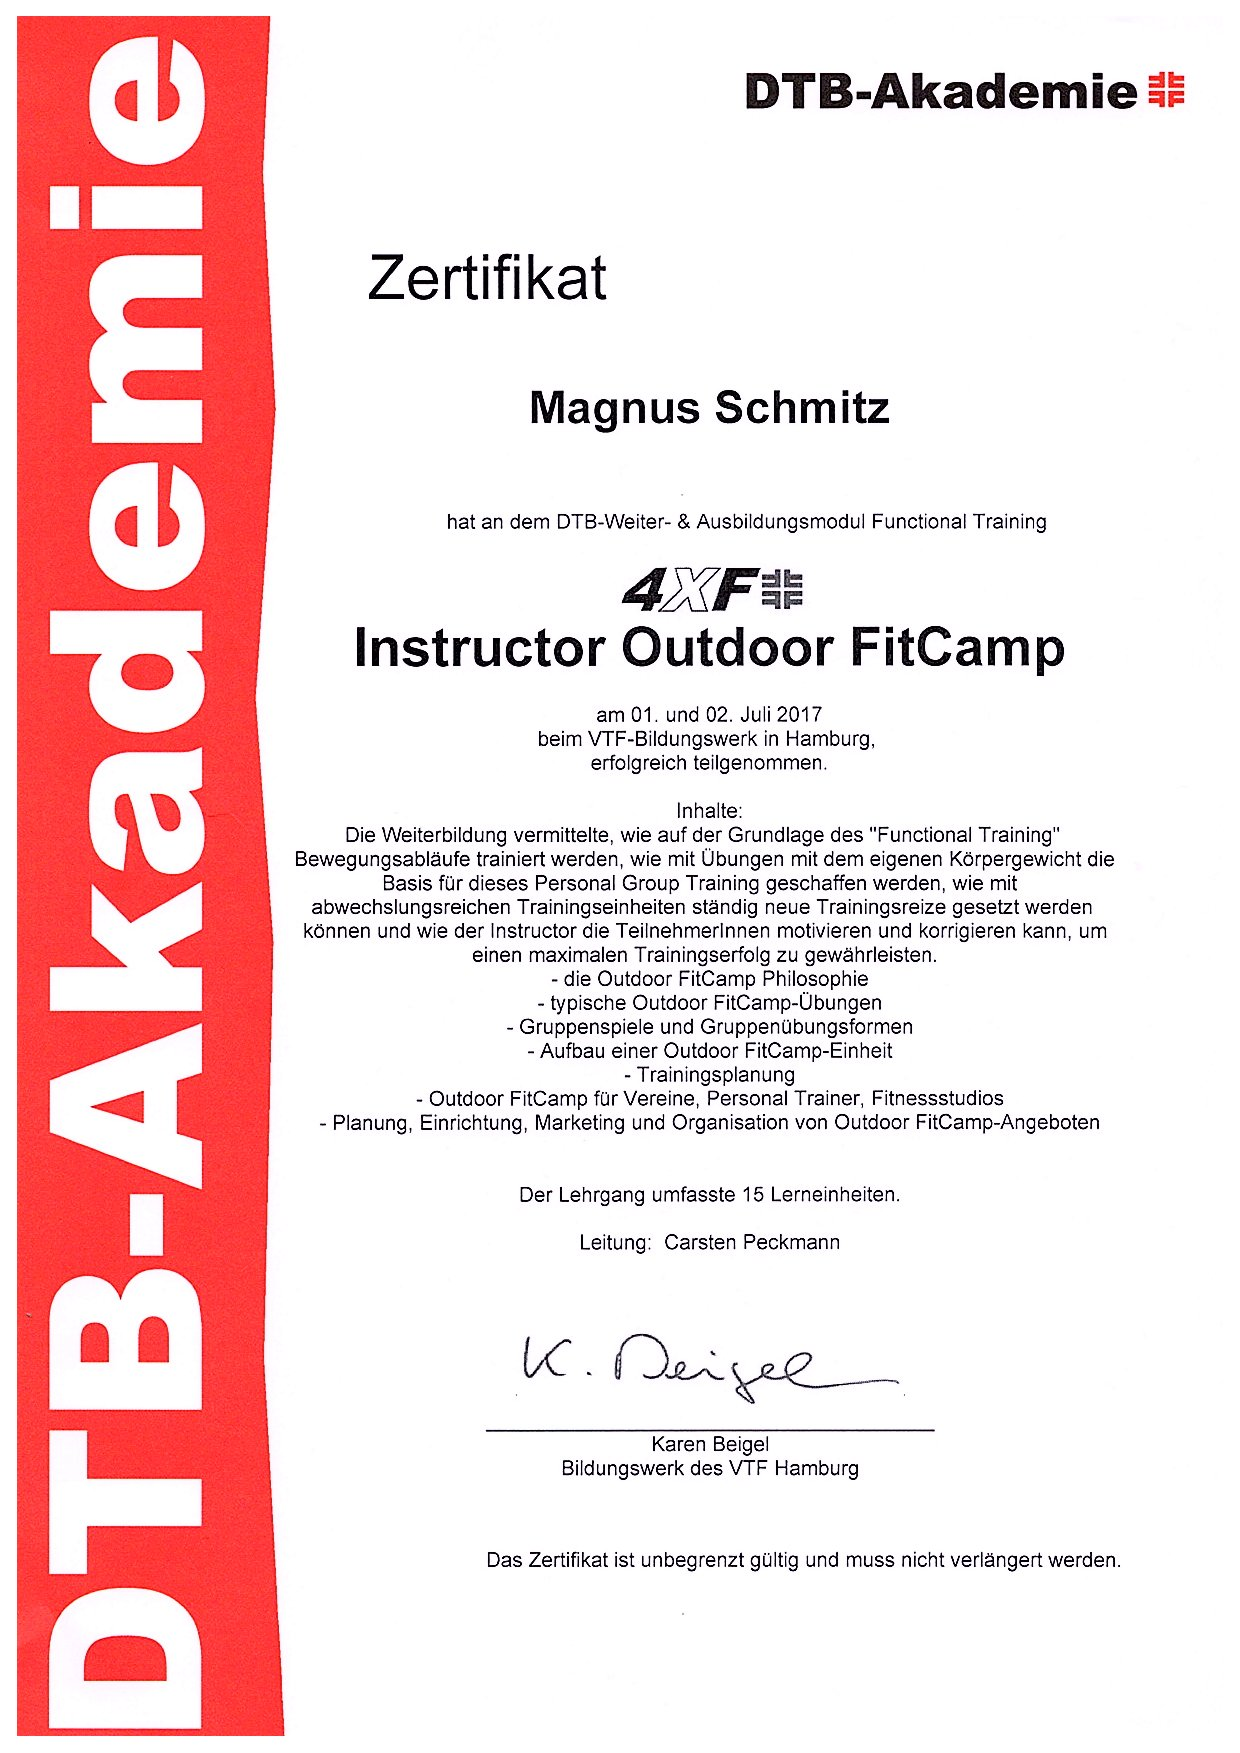 Zertifikat 4XF OutdoorFitcamp Instructor